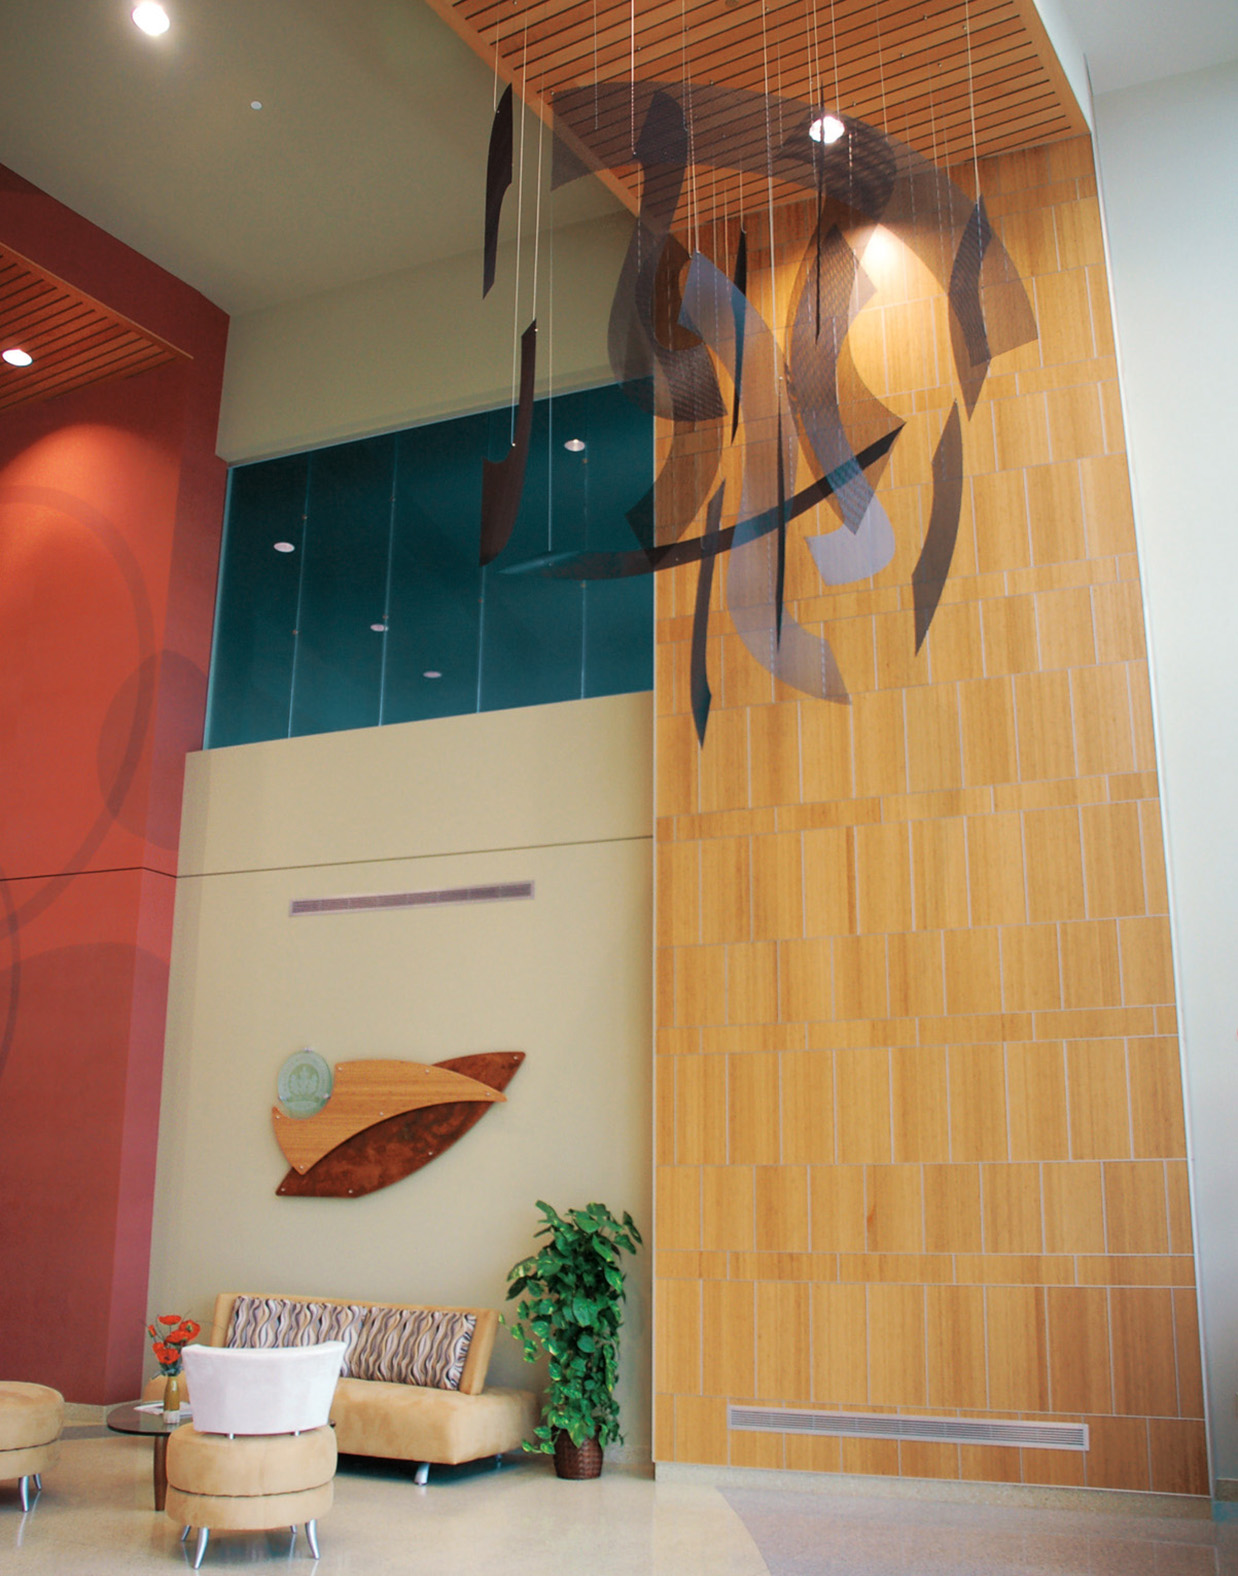 Transformation corporate art sculpture by Talley Fisher above the lobby in Gialamas Group: Erdman Building